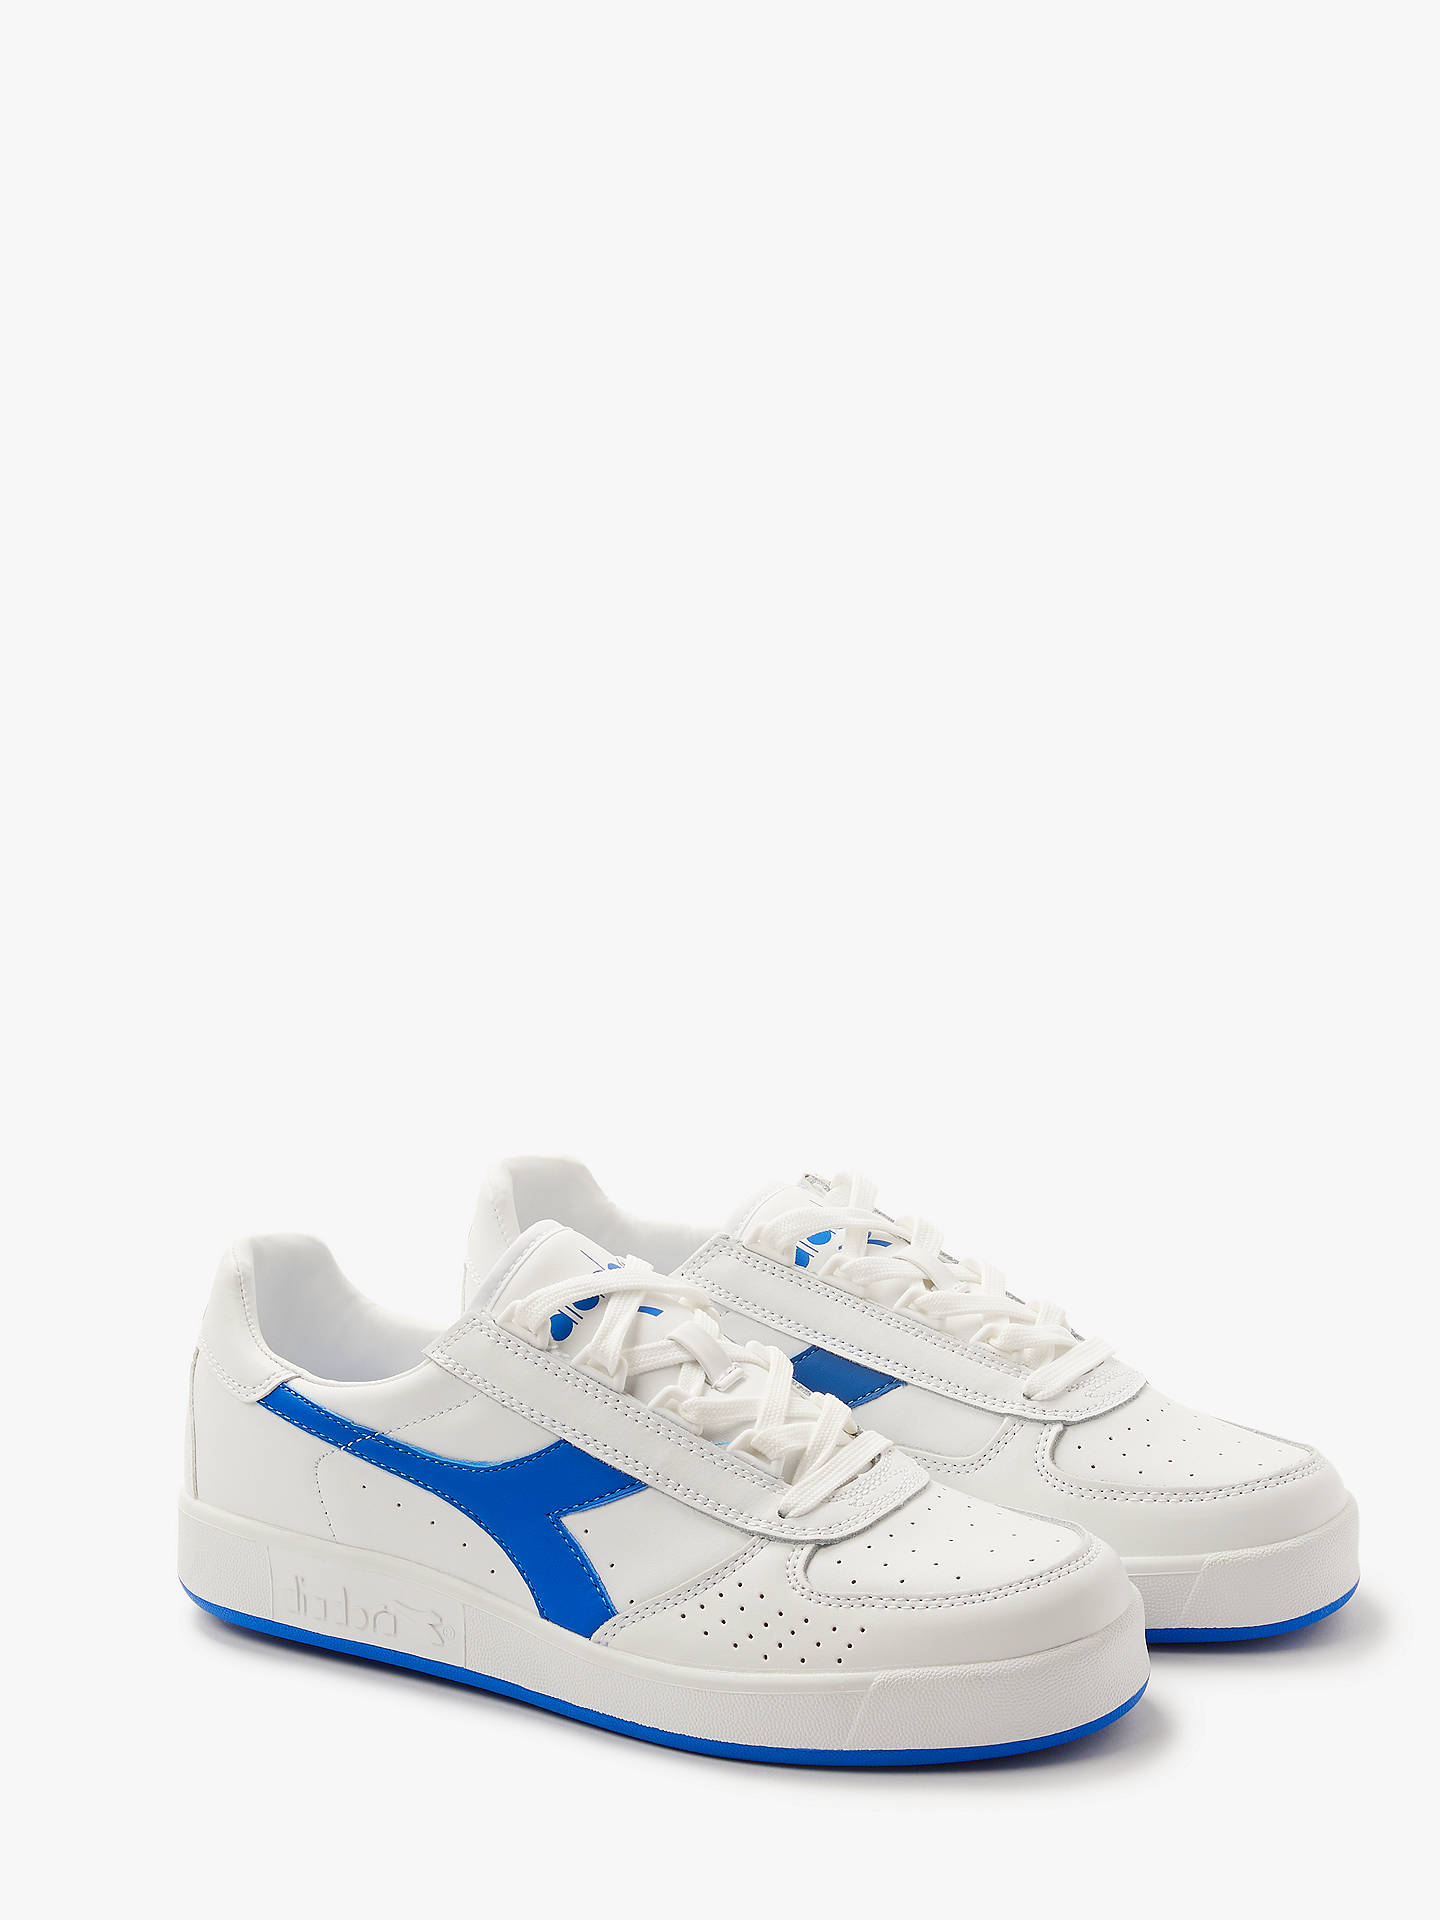 ac86ad96 Diadora B.Elite Lace Up Trainers, White/Royal Blue at John Lewis ...